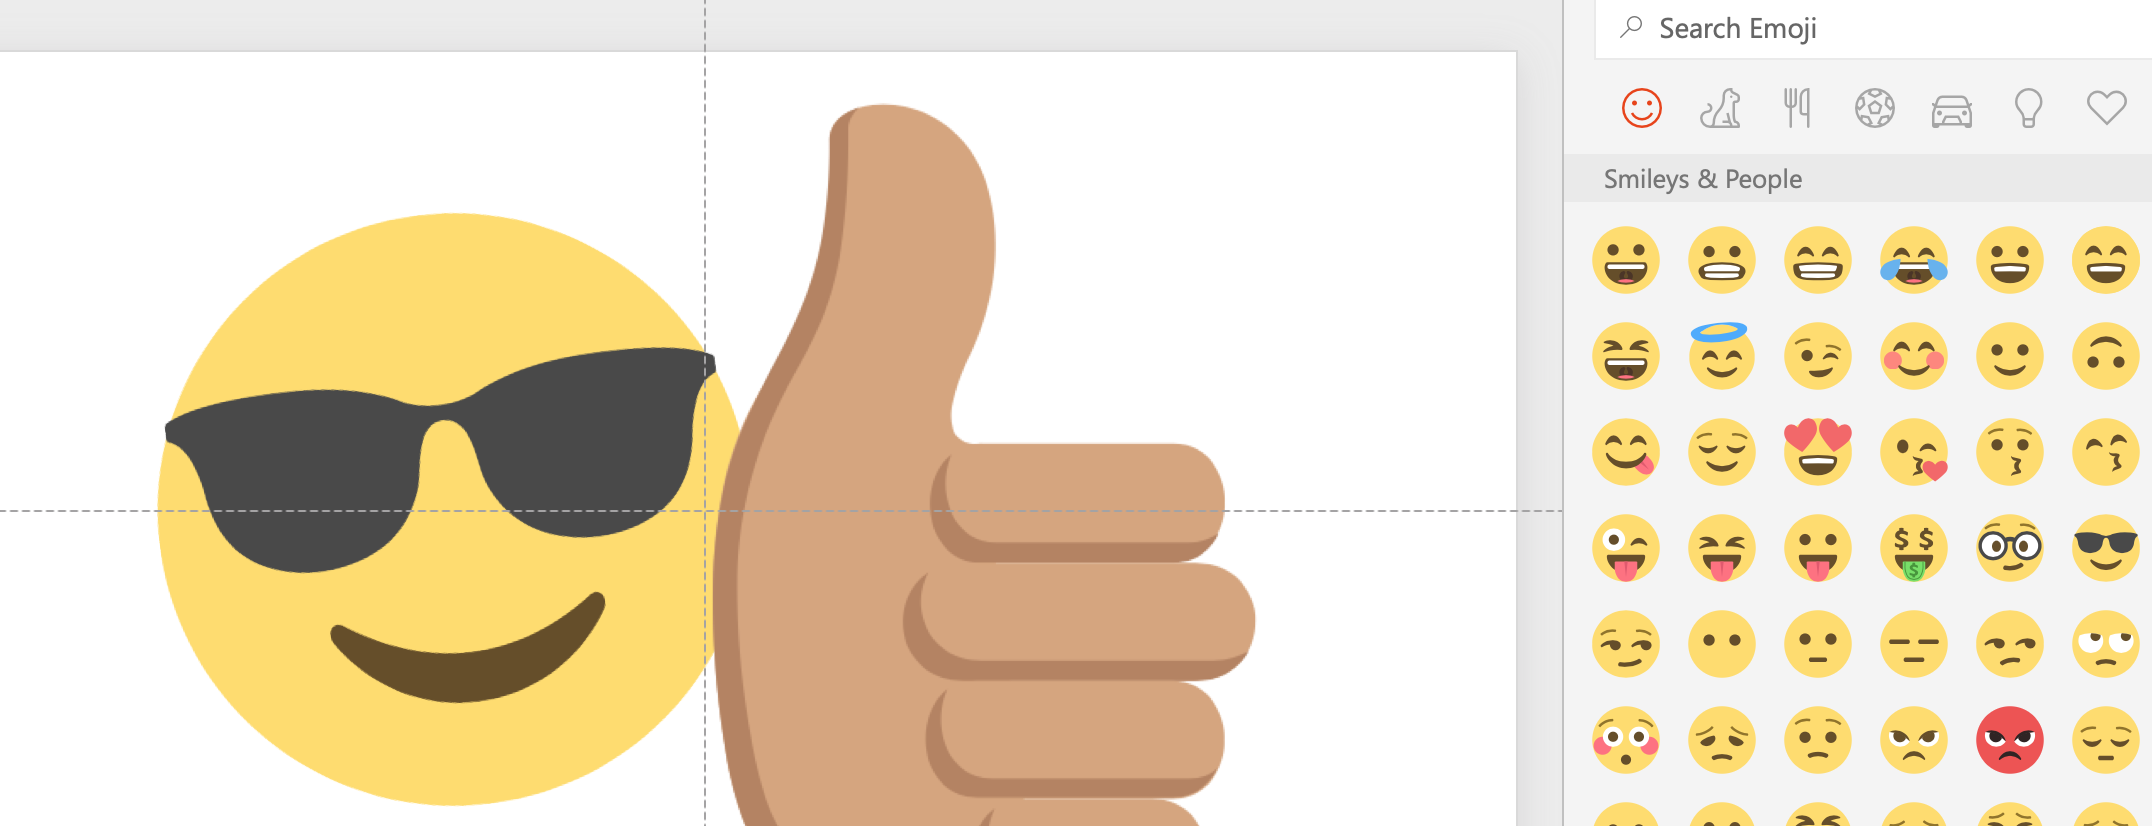 Emoji in Office 365